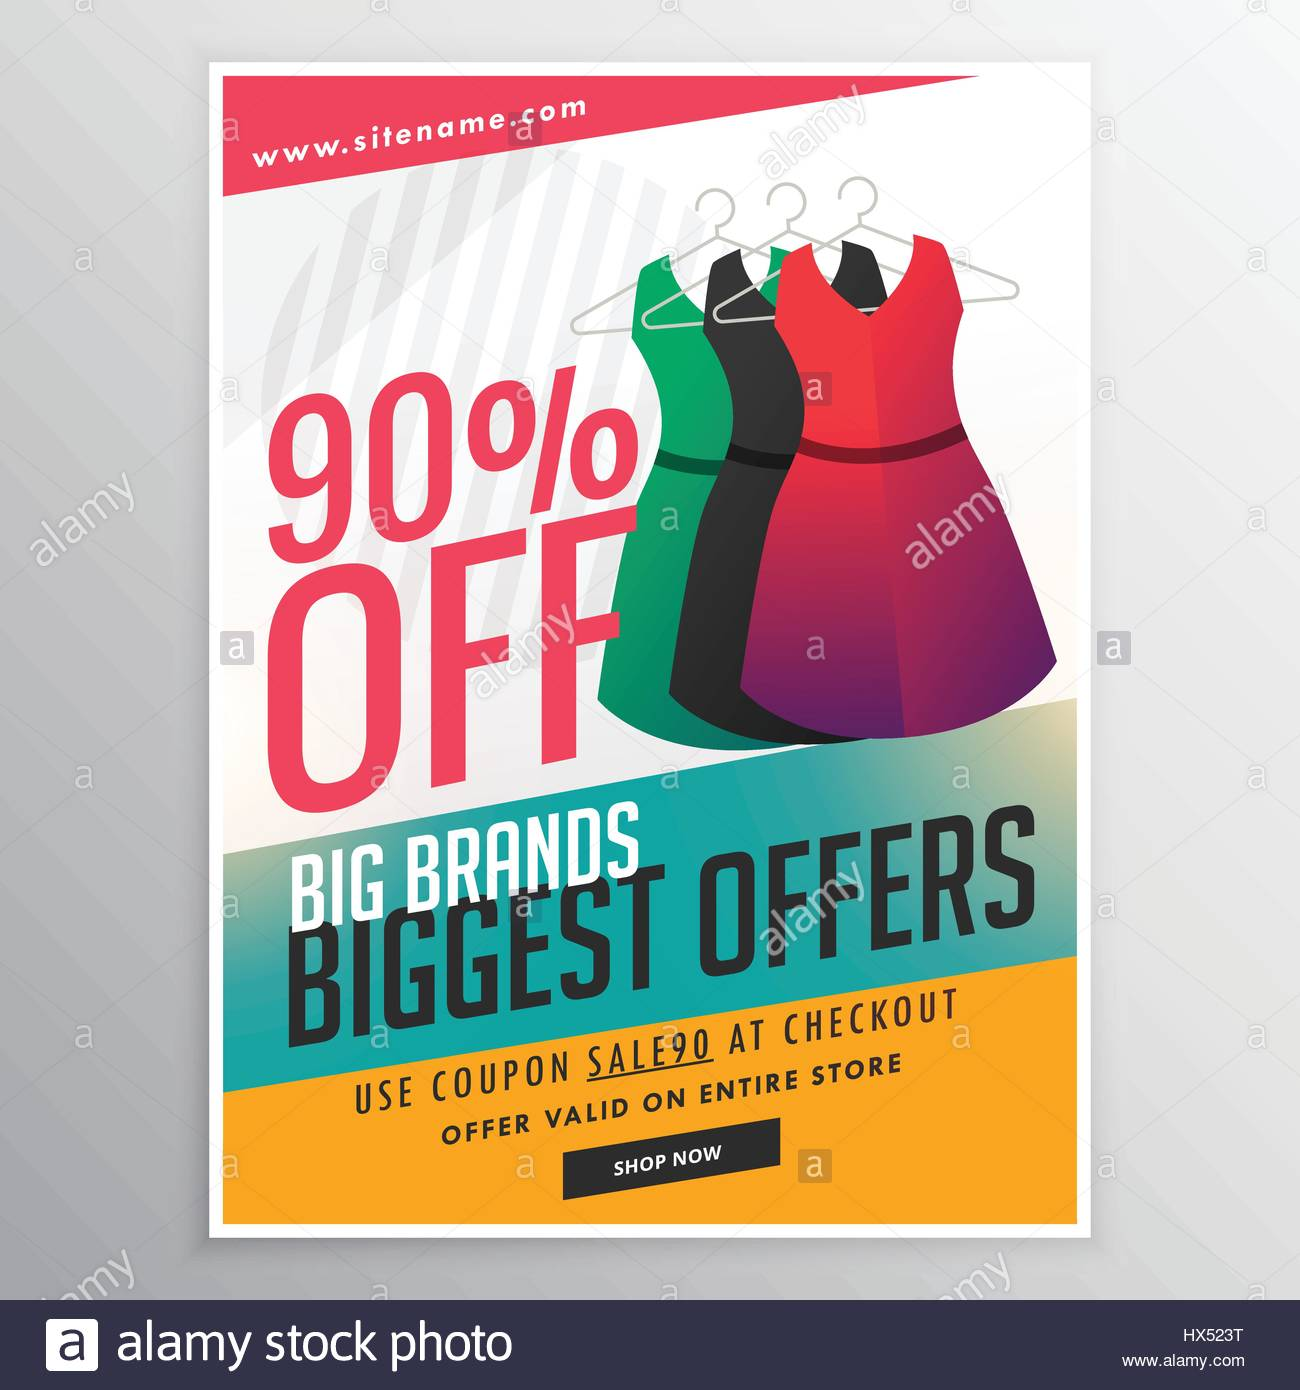 Fashion sale discount promotional brochure flyer template with dress fashion sale discount promotional brochure flyer template with dress illustration and colorful shapes maxwellsz